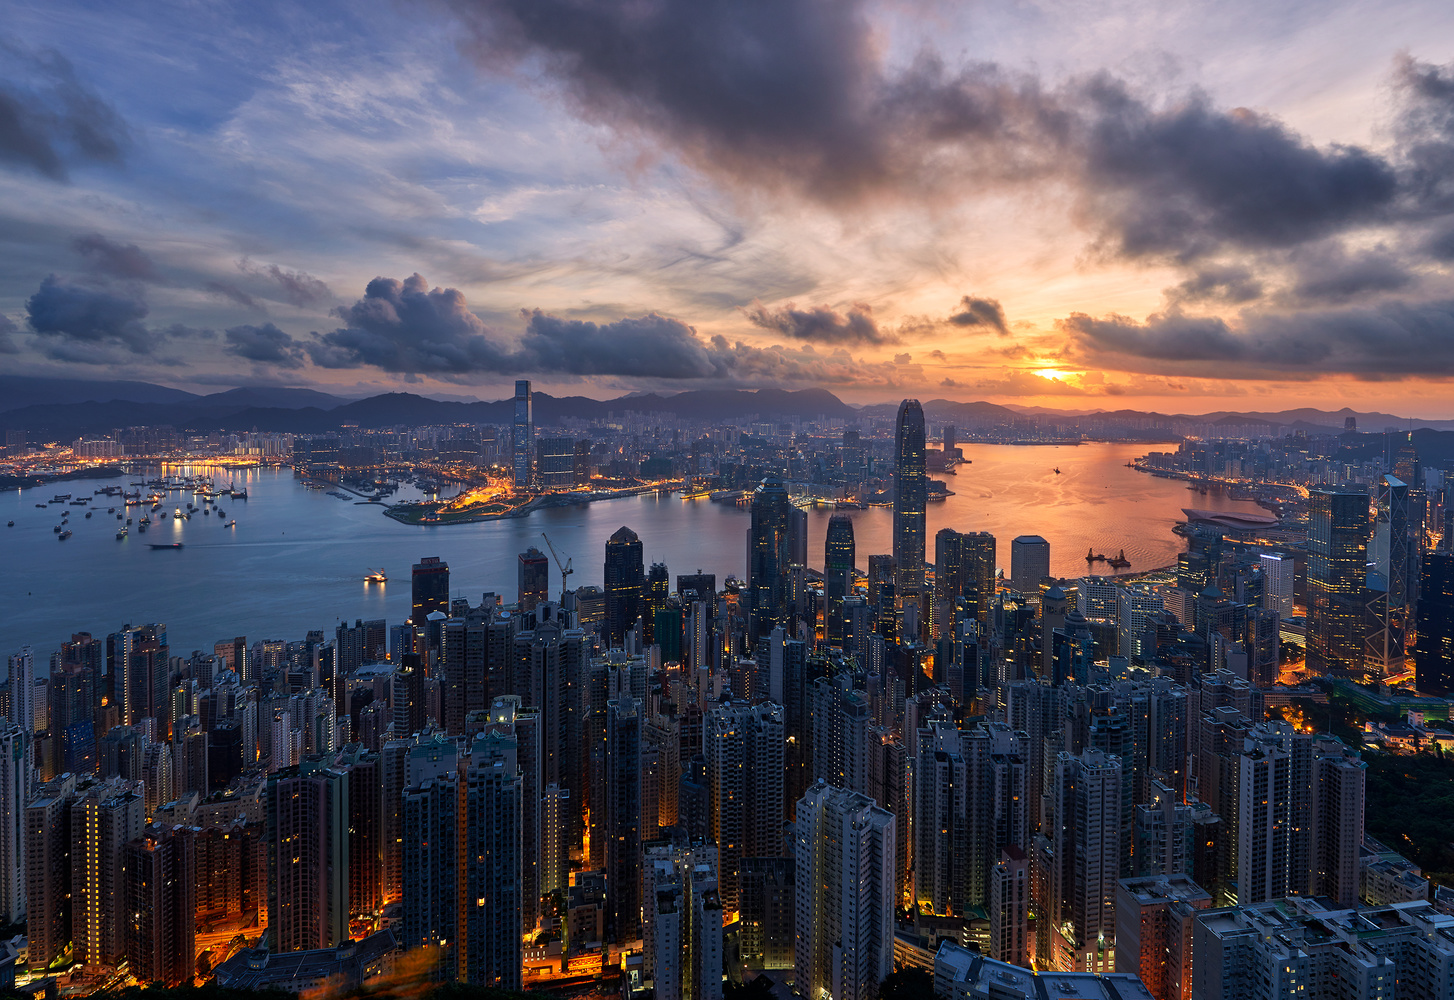 Fstoppers Newest Tutorial On Cityscape And